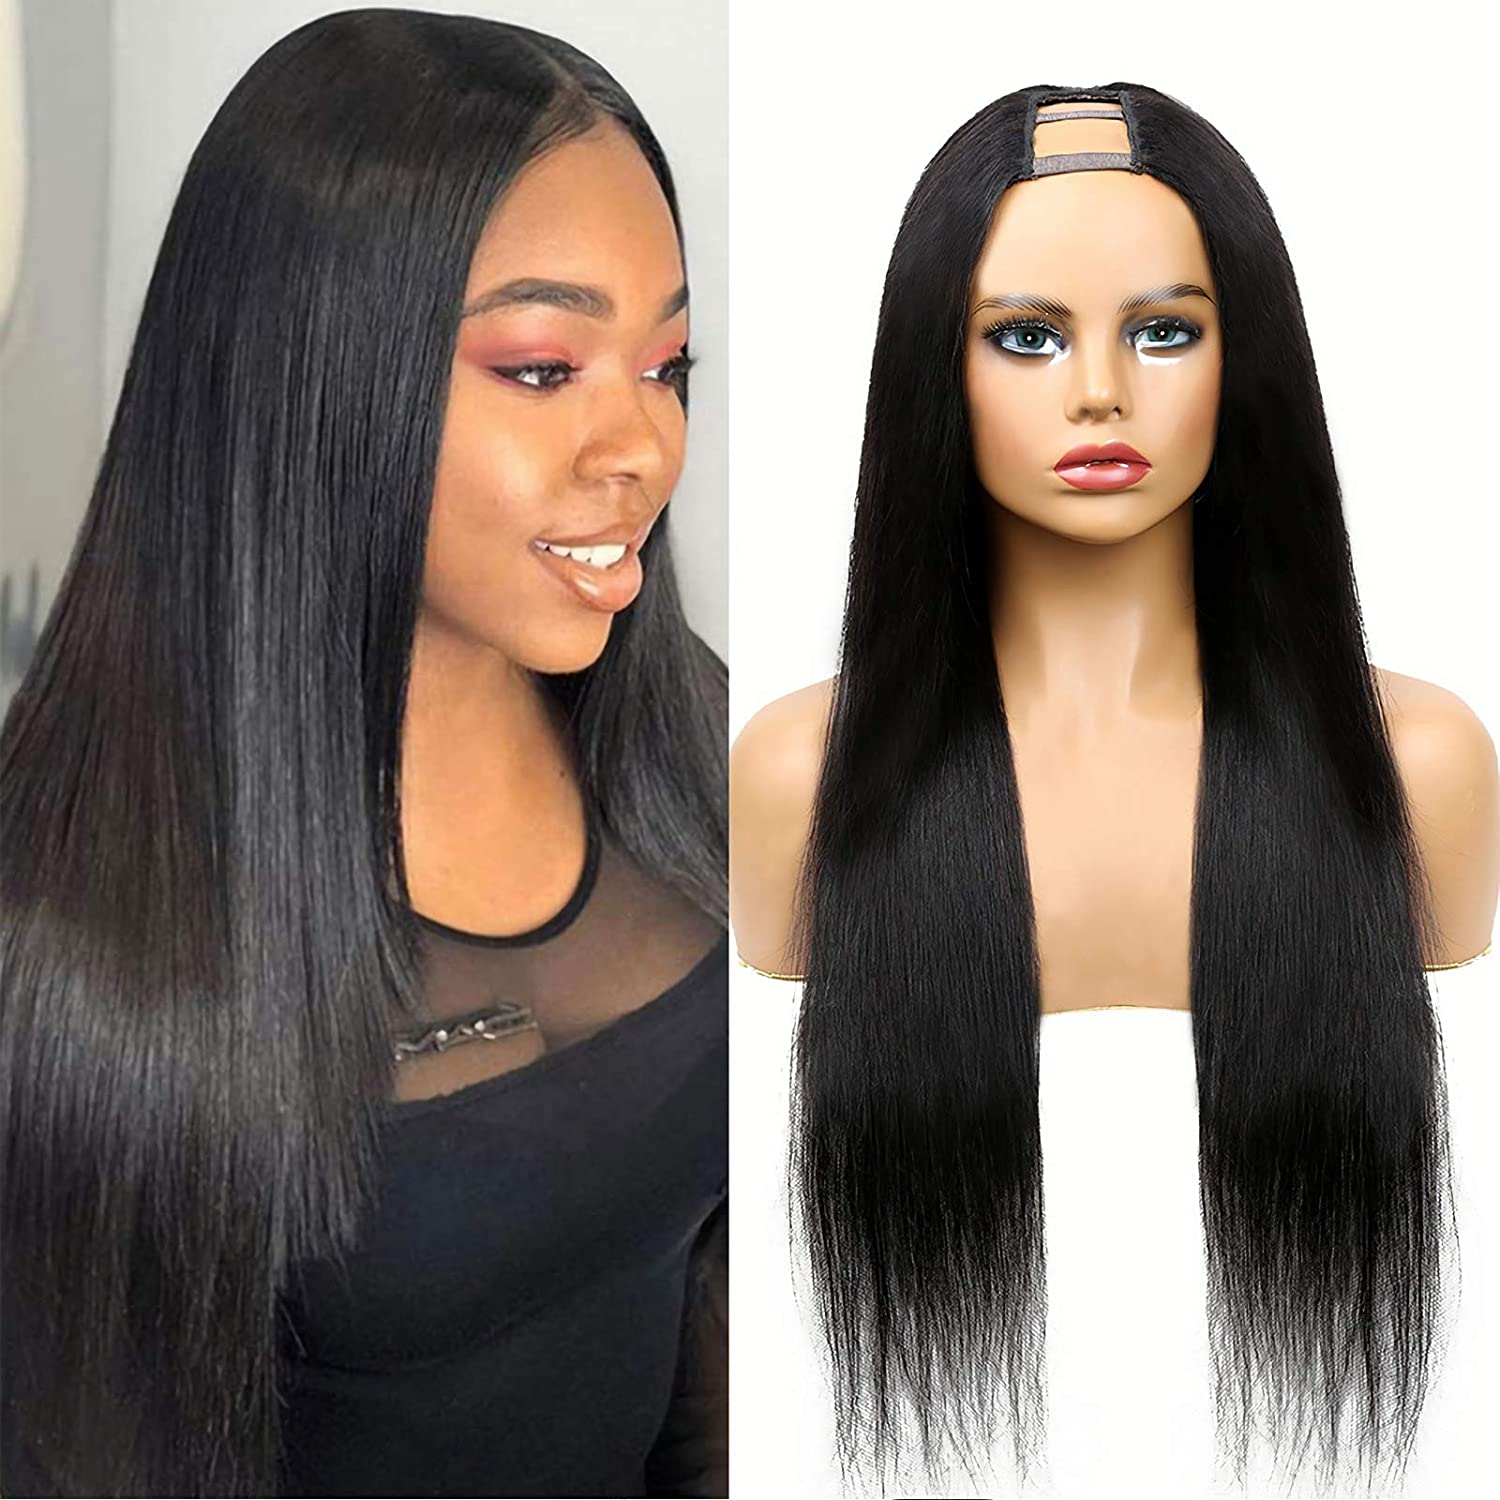 Super sale U Part Wig Human Hair Straight Wigs Women for Ranking TOP1 Upart Black wi